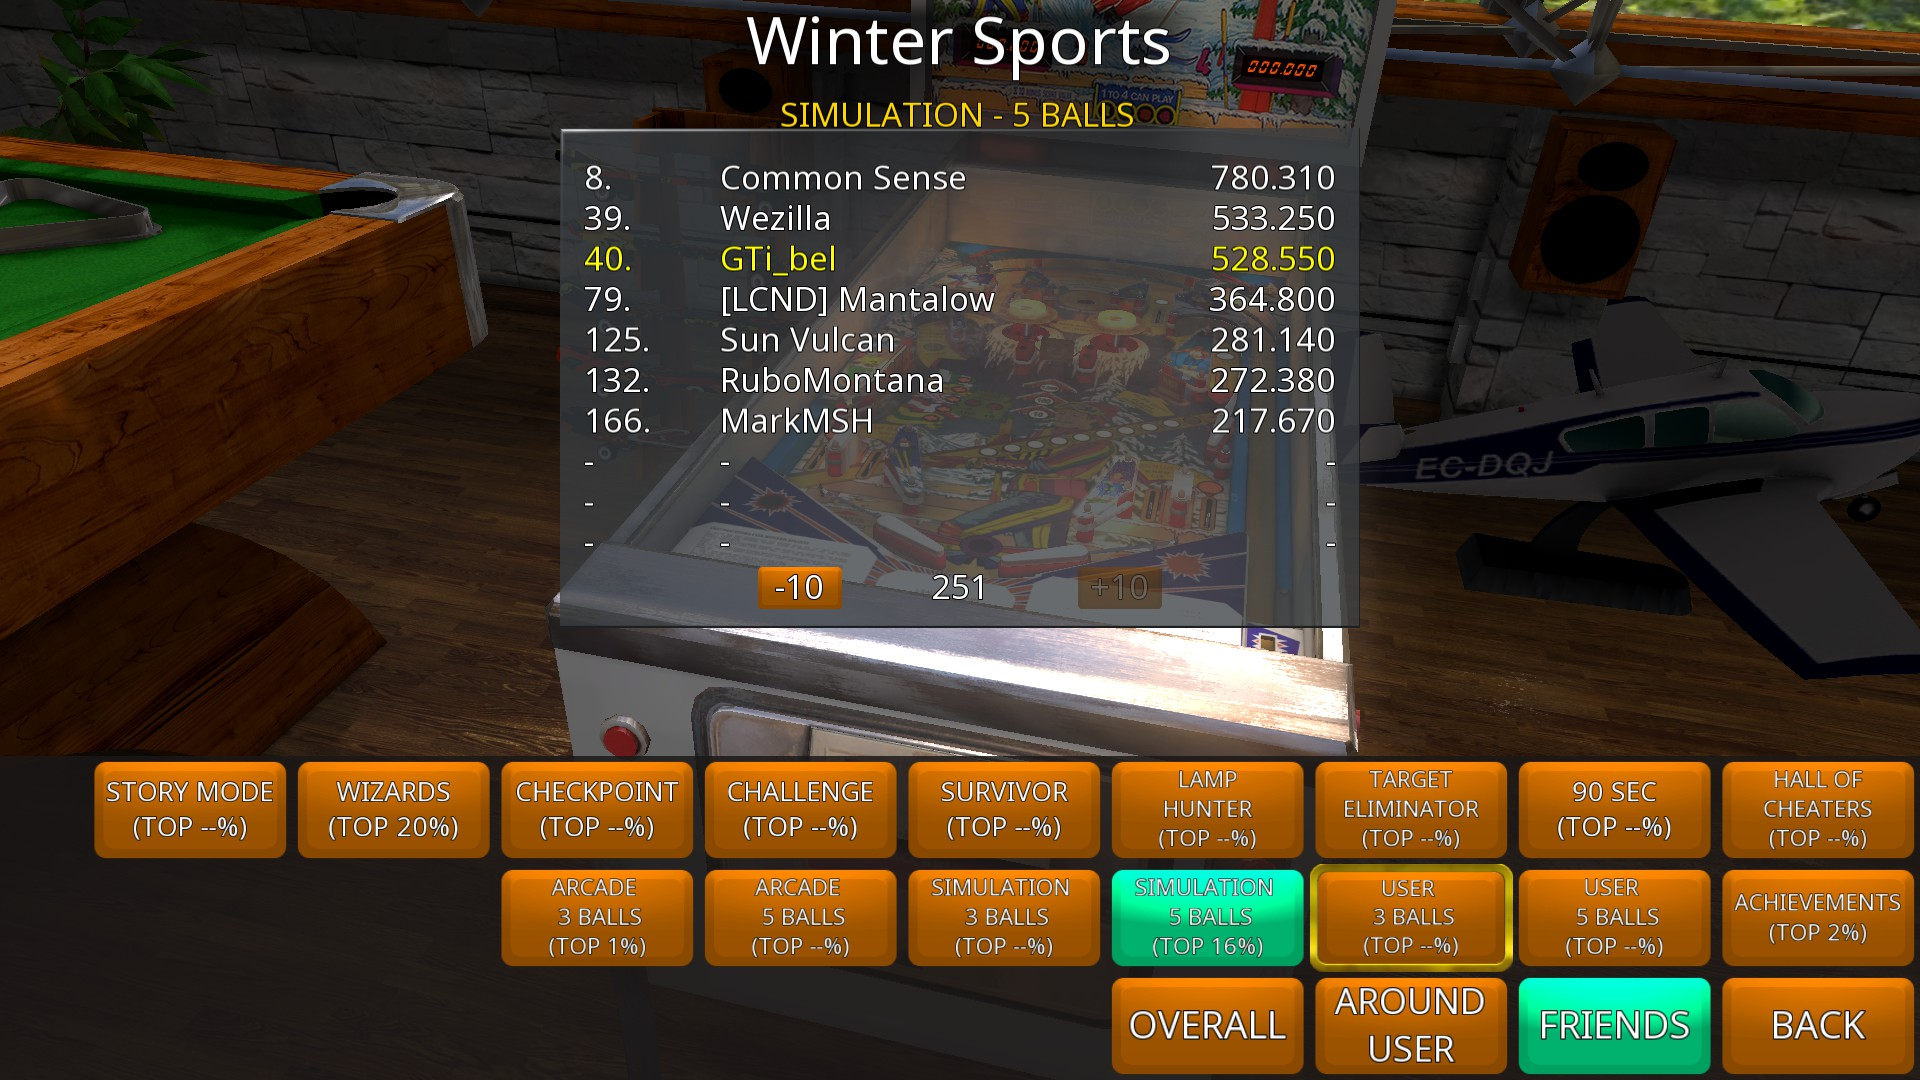 Zaccaria Pinball: Winter Sports [5 balls] 528,550 points